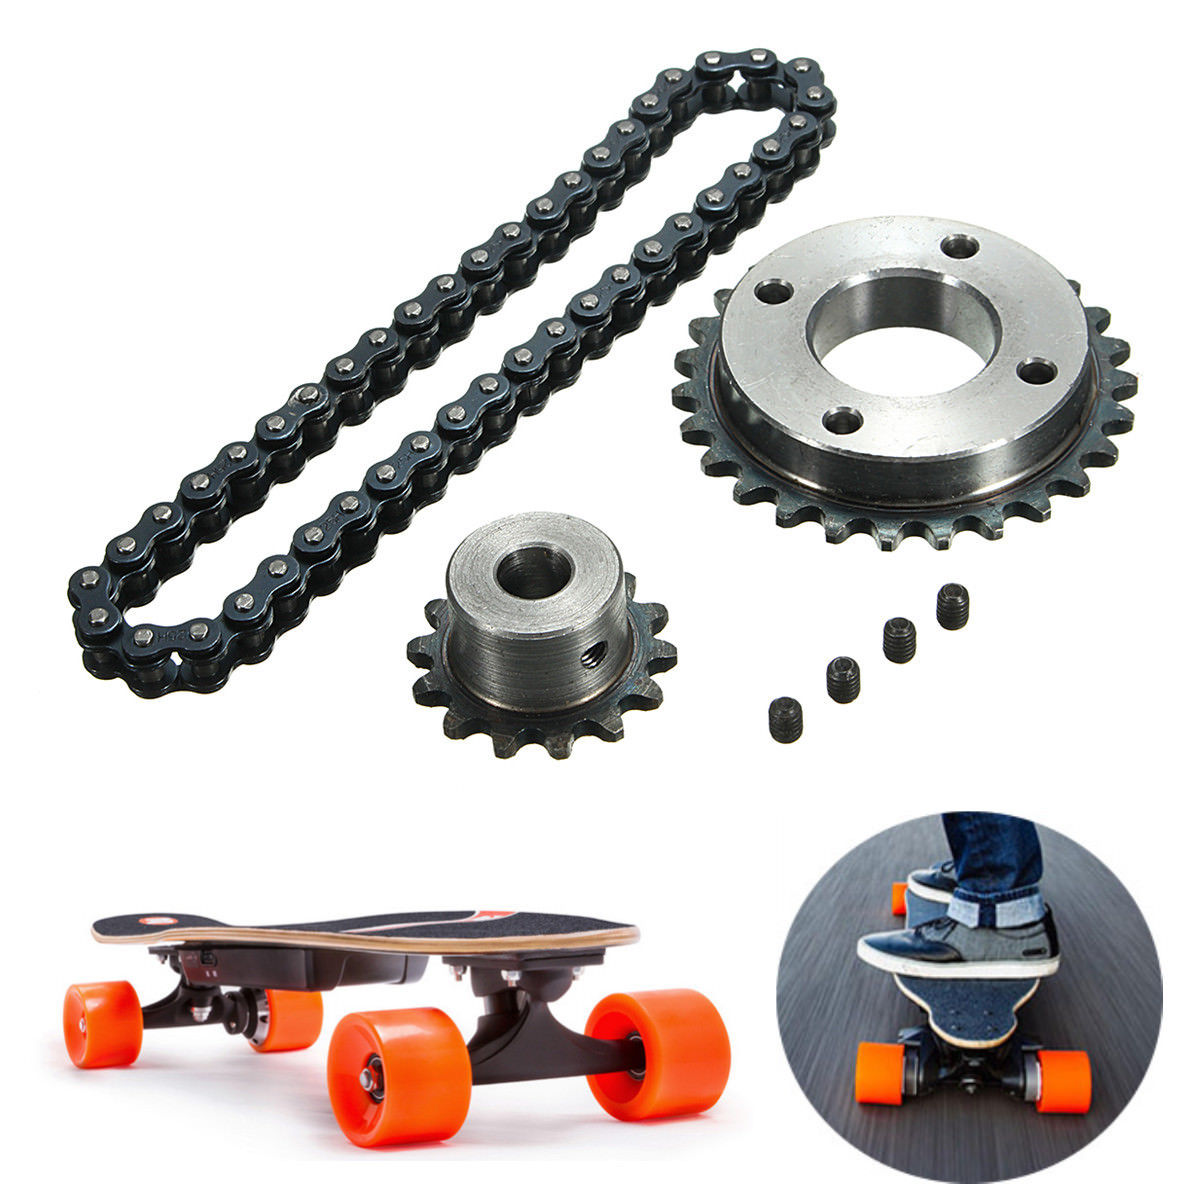 NO Sprocket Chain Wheel For DIY Electric Longboard Skateboard Parts Repalcement DIY